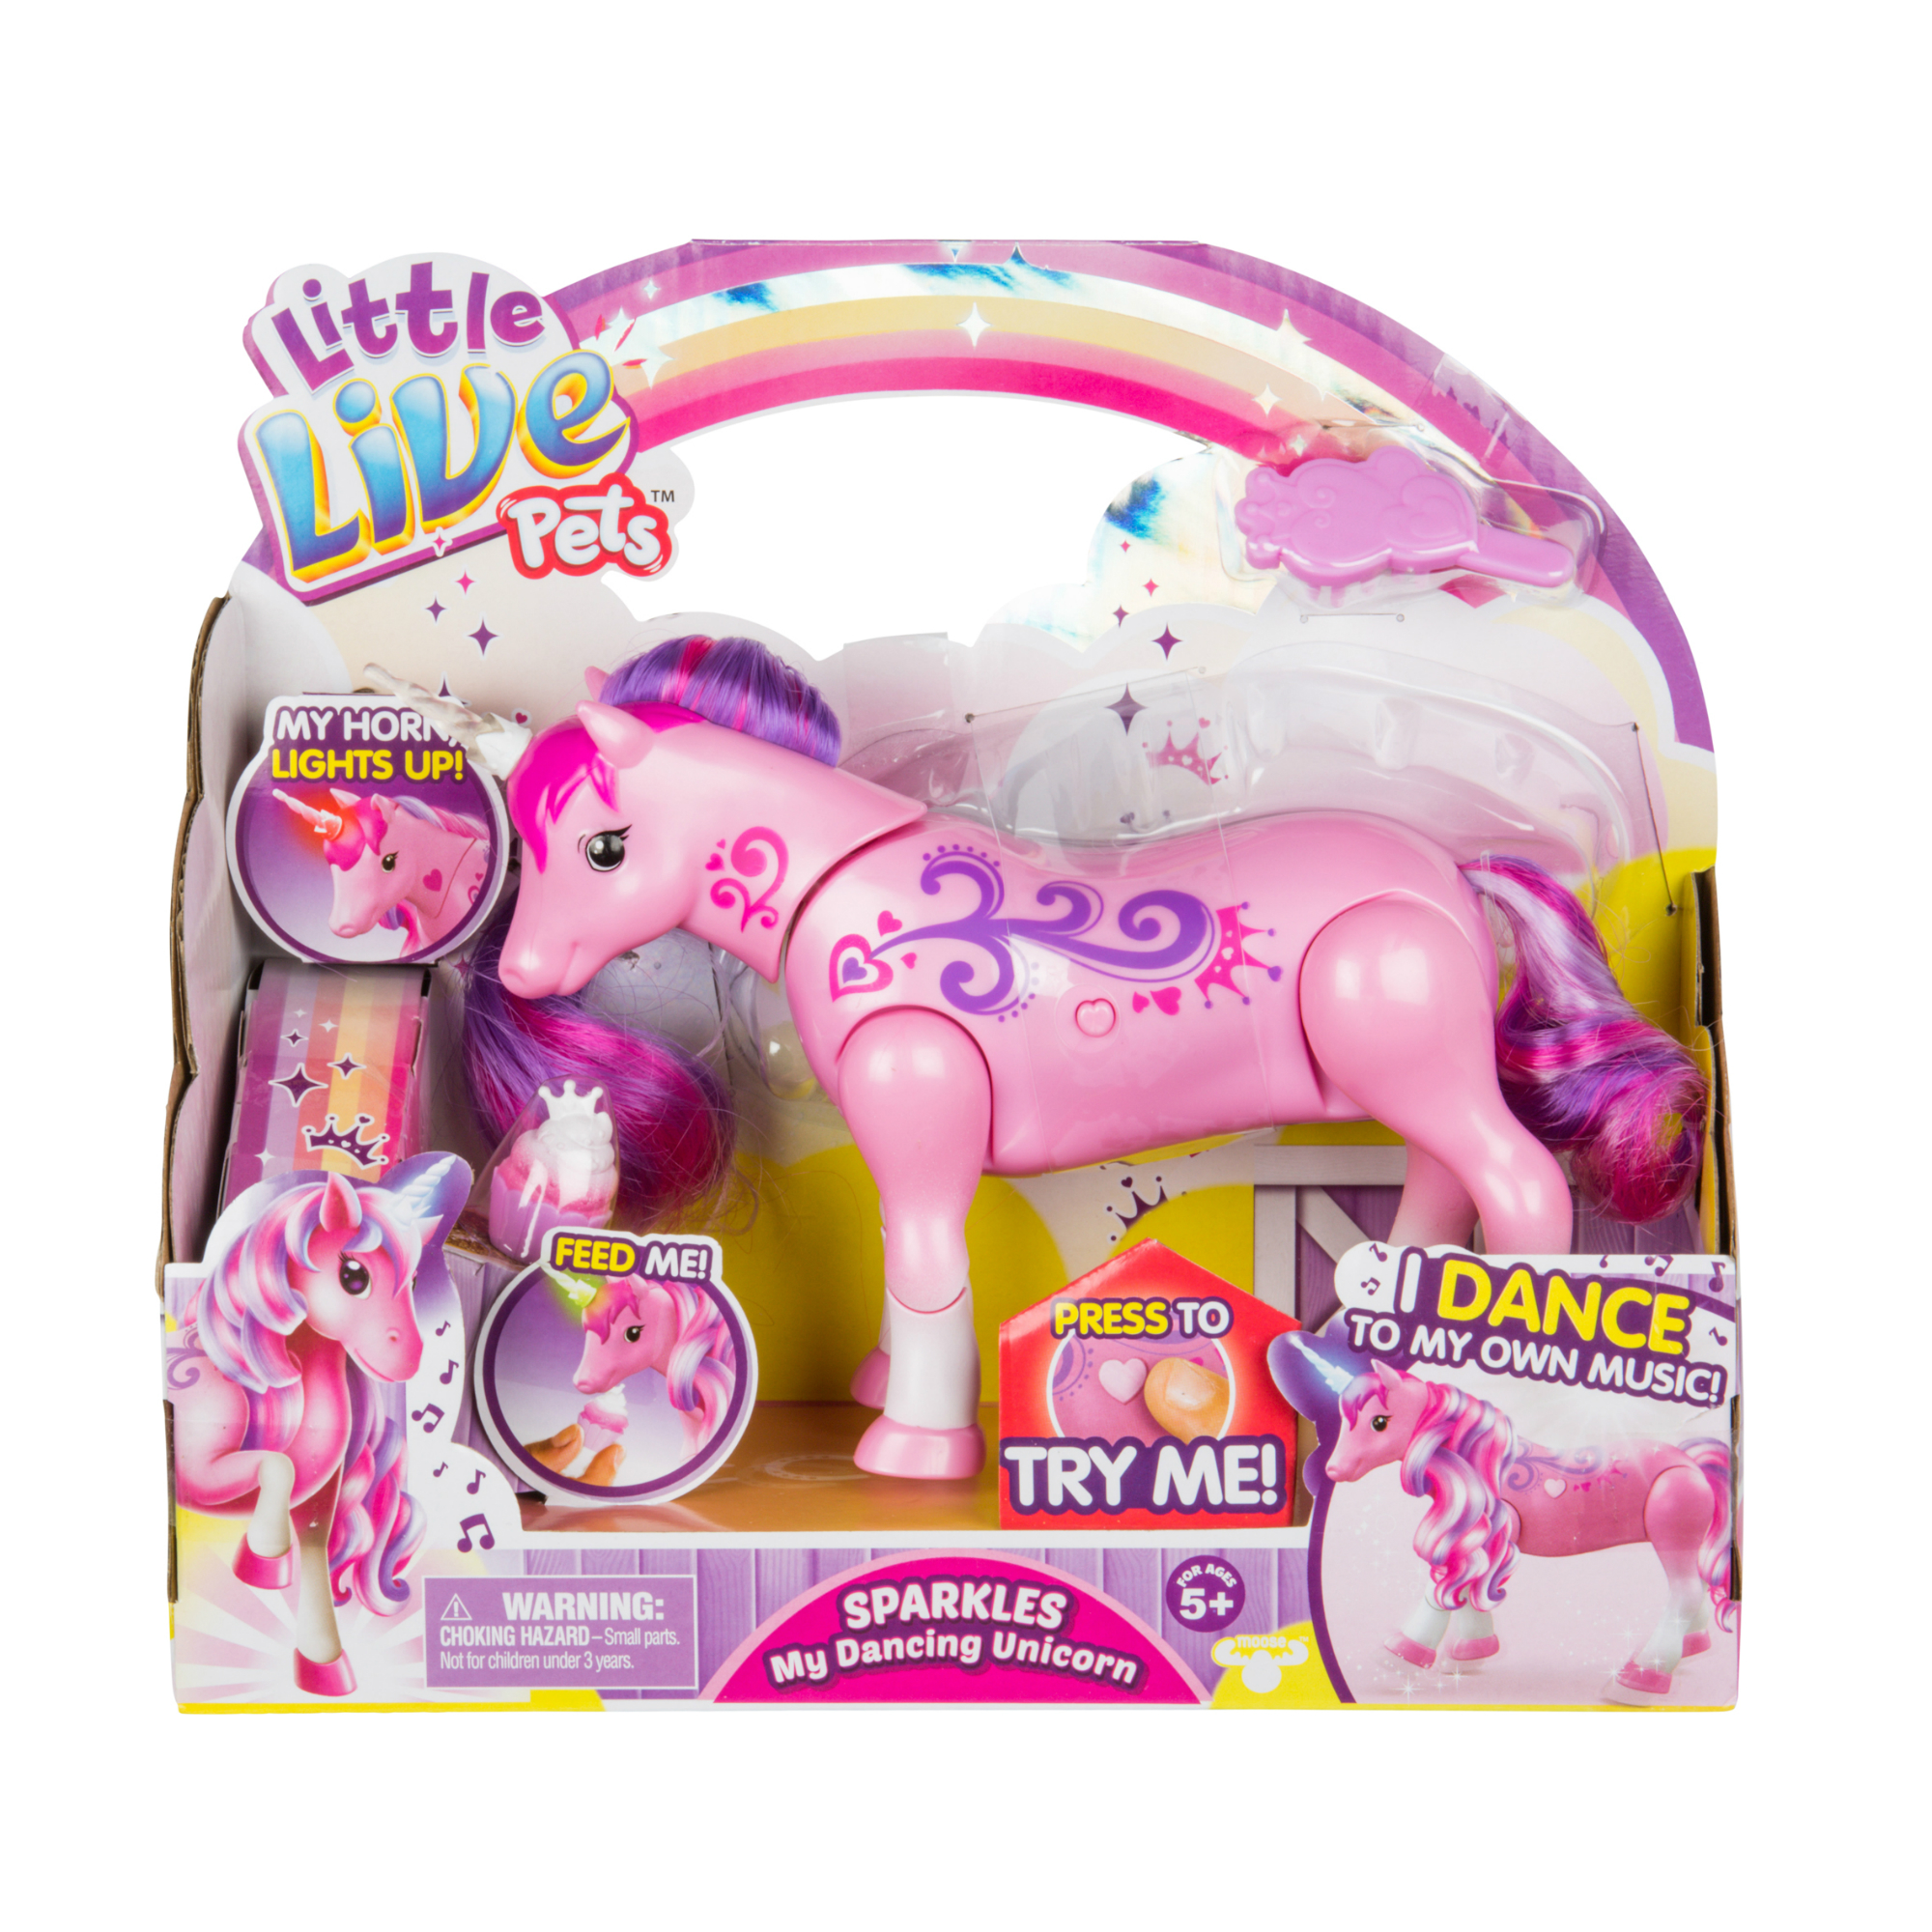 Picture of Little Live Pets Sparkles My Dancing Unicorn